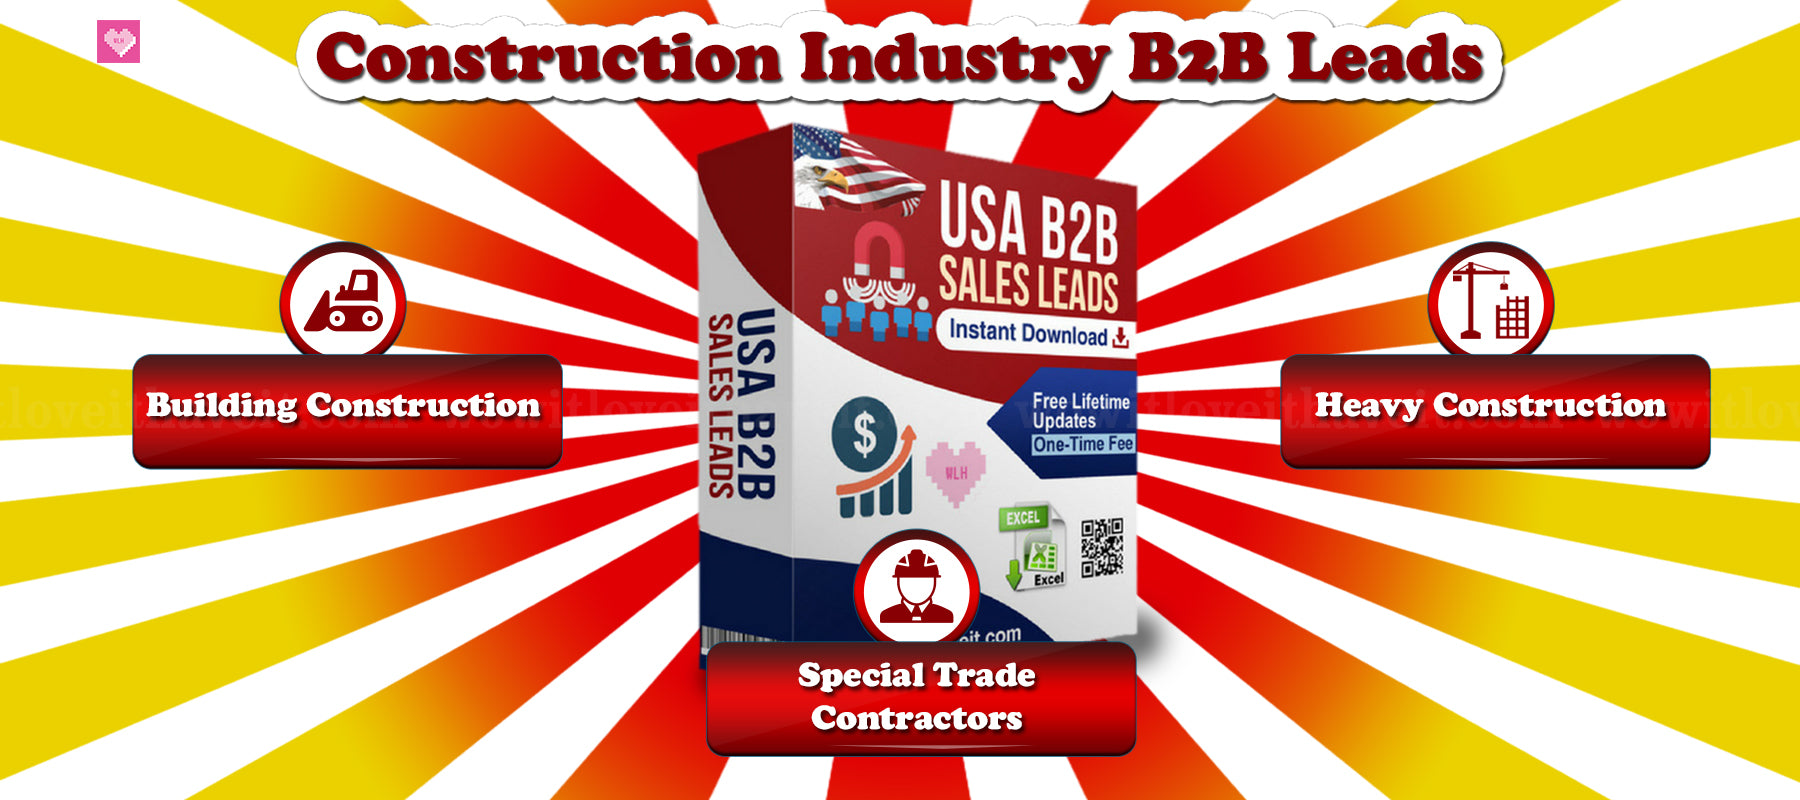 Construction Special Trade Contractors Business Mailing Lists and E-Mail Lists